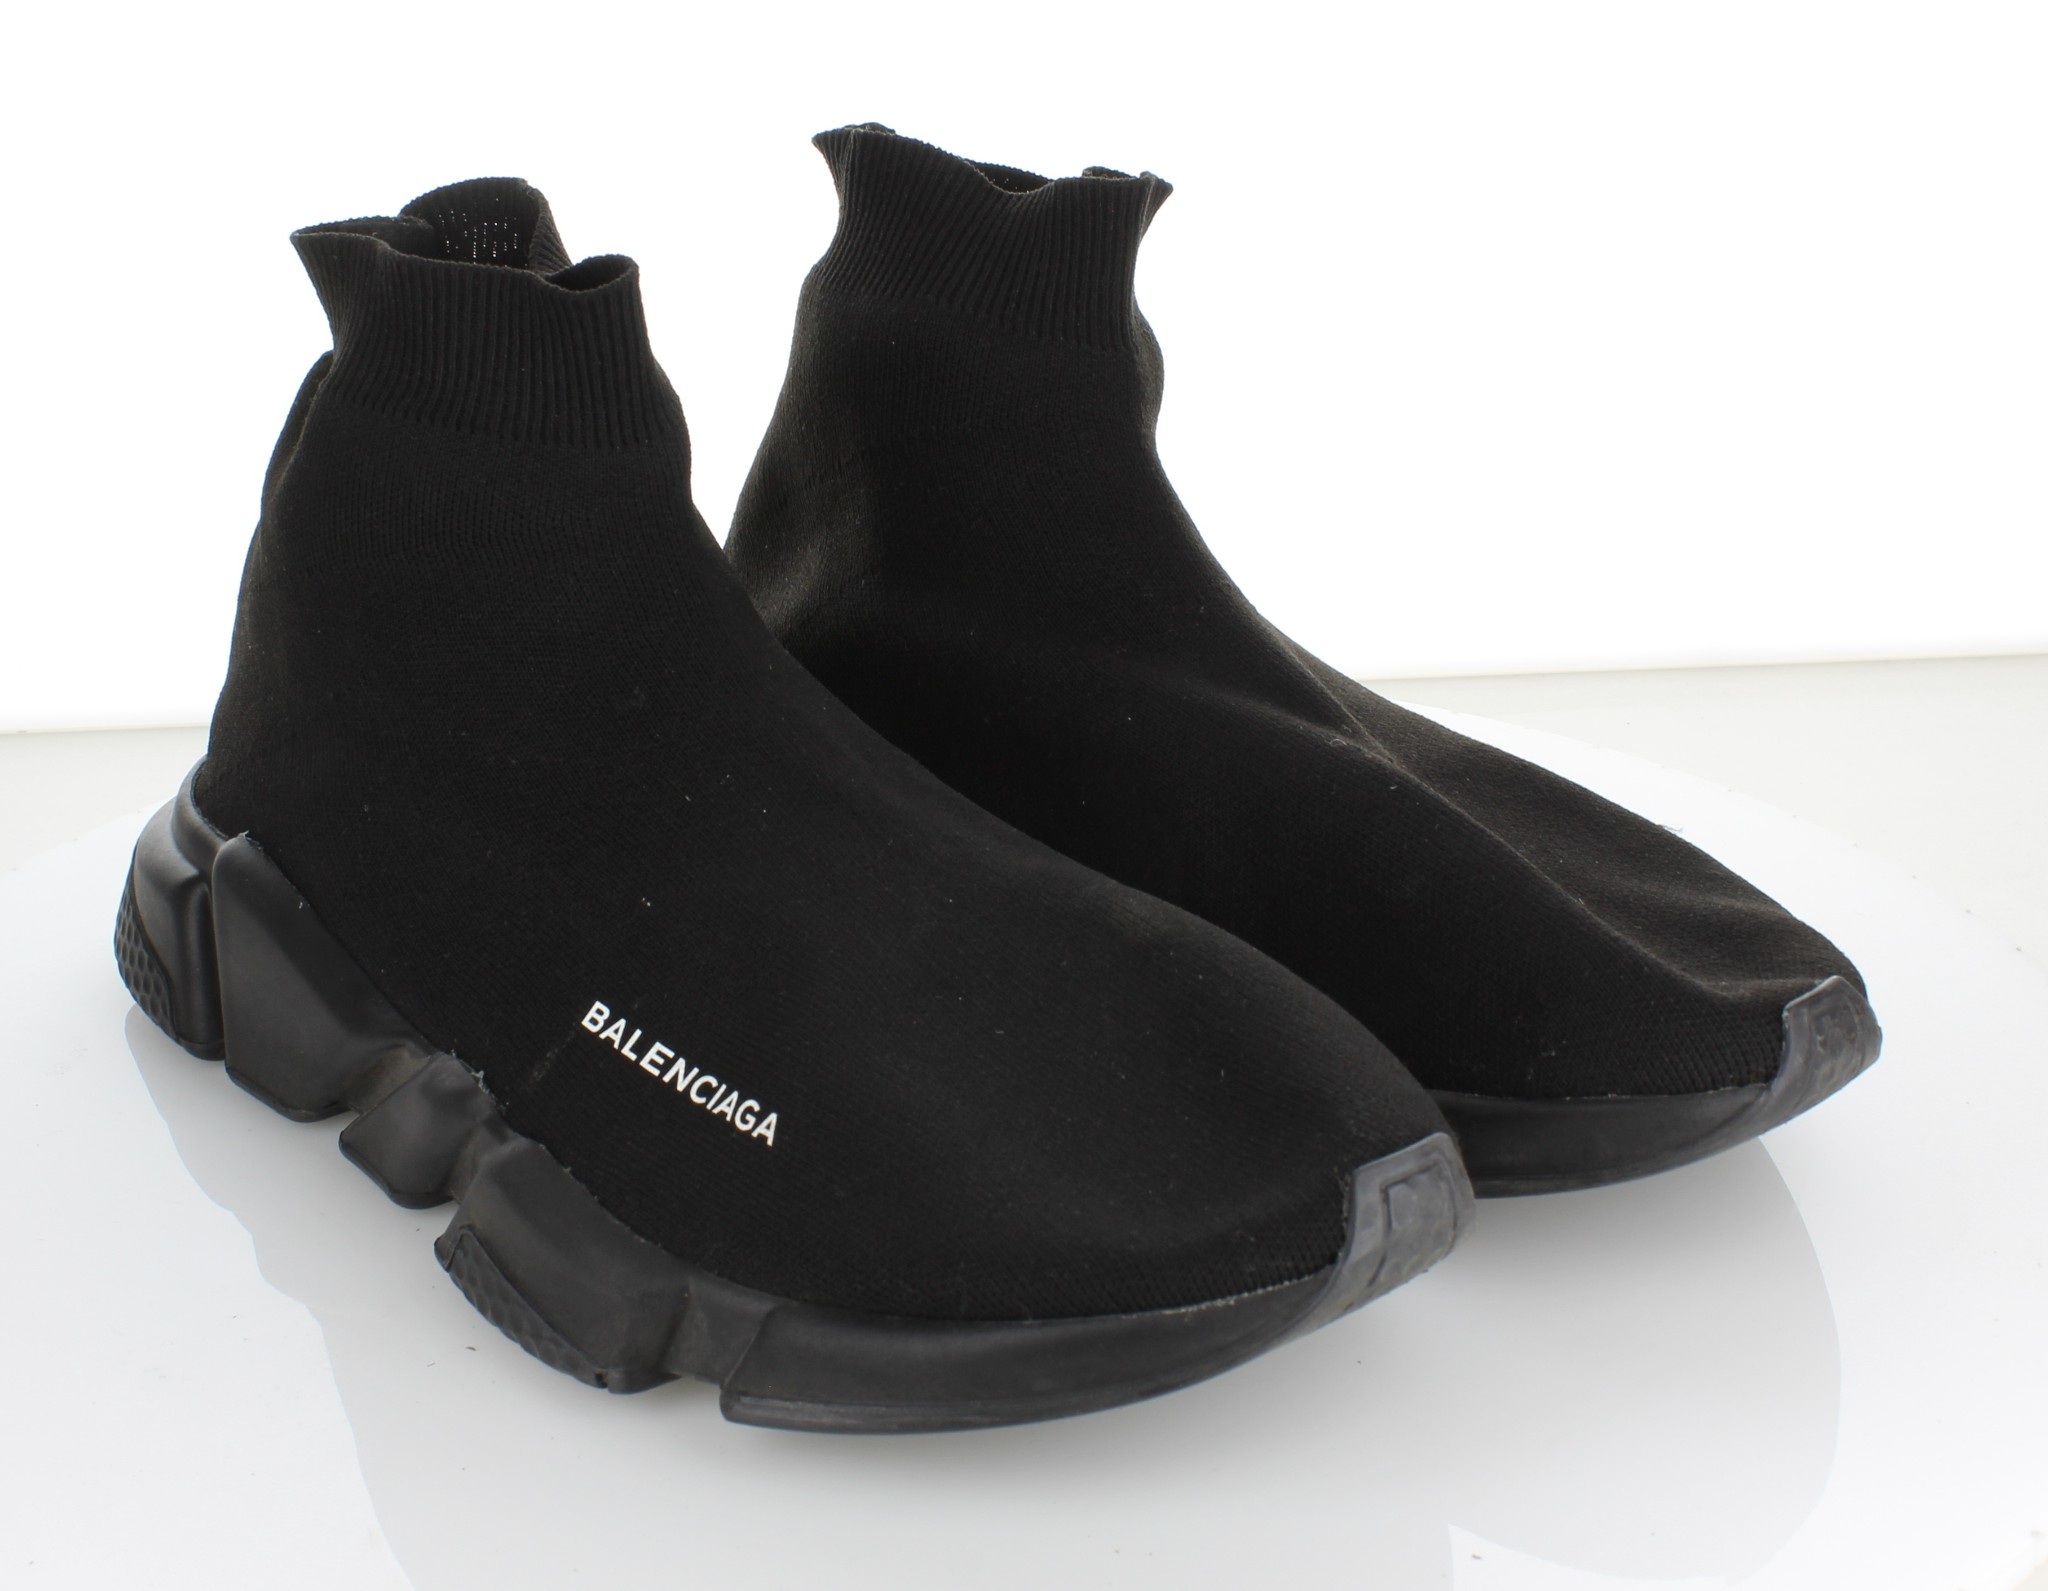 56c0017b19bb 4233 Balenciaga Speed Black Textile Mid Sock Sneaker Men's Sz 44 M ...